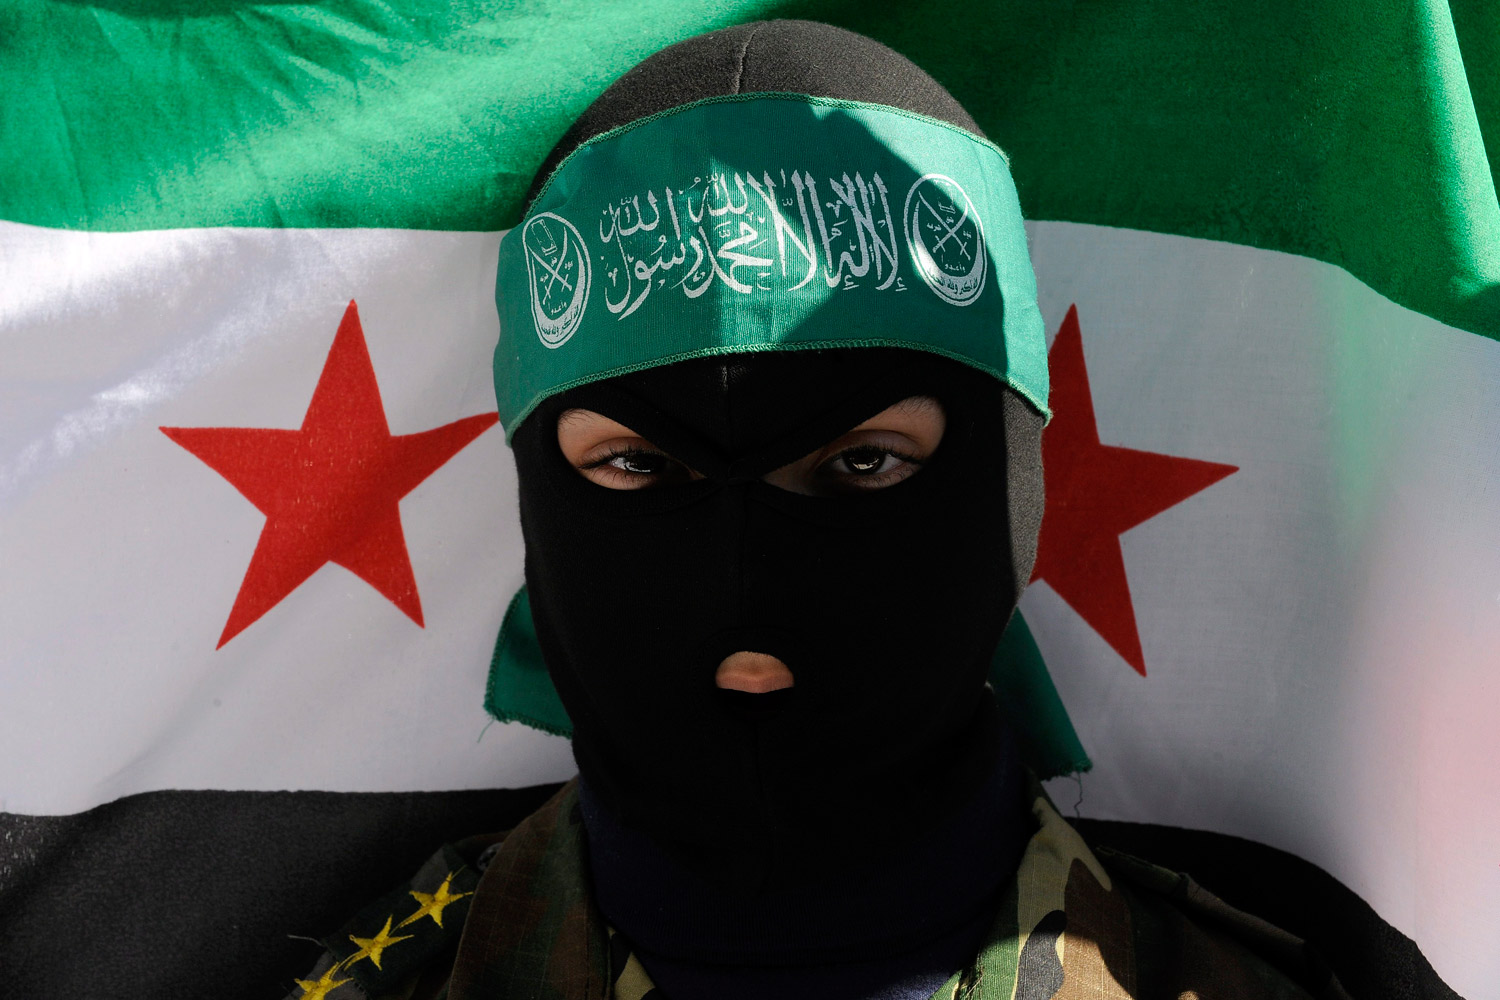 February 5, 2012. A Lebanese anti-Syrian regime protester and supporter of an Islamic group stands in front of a Syrian revolution flag, during a sit-in in front of the Russian Embassy in Beirut.